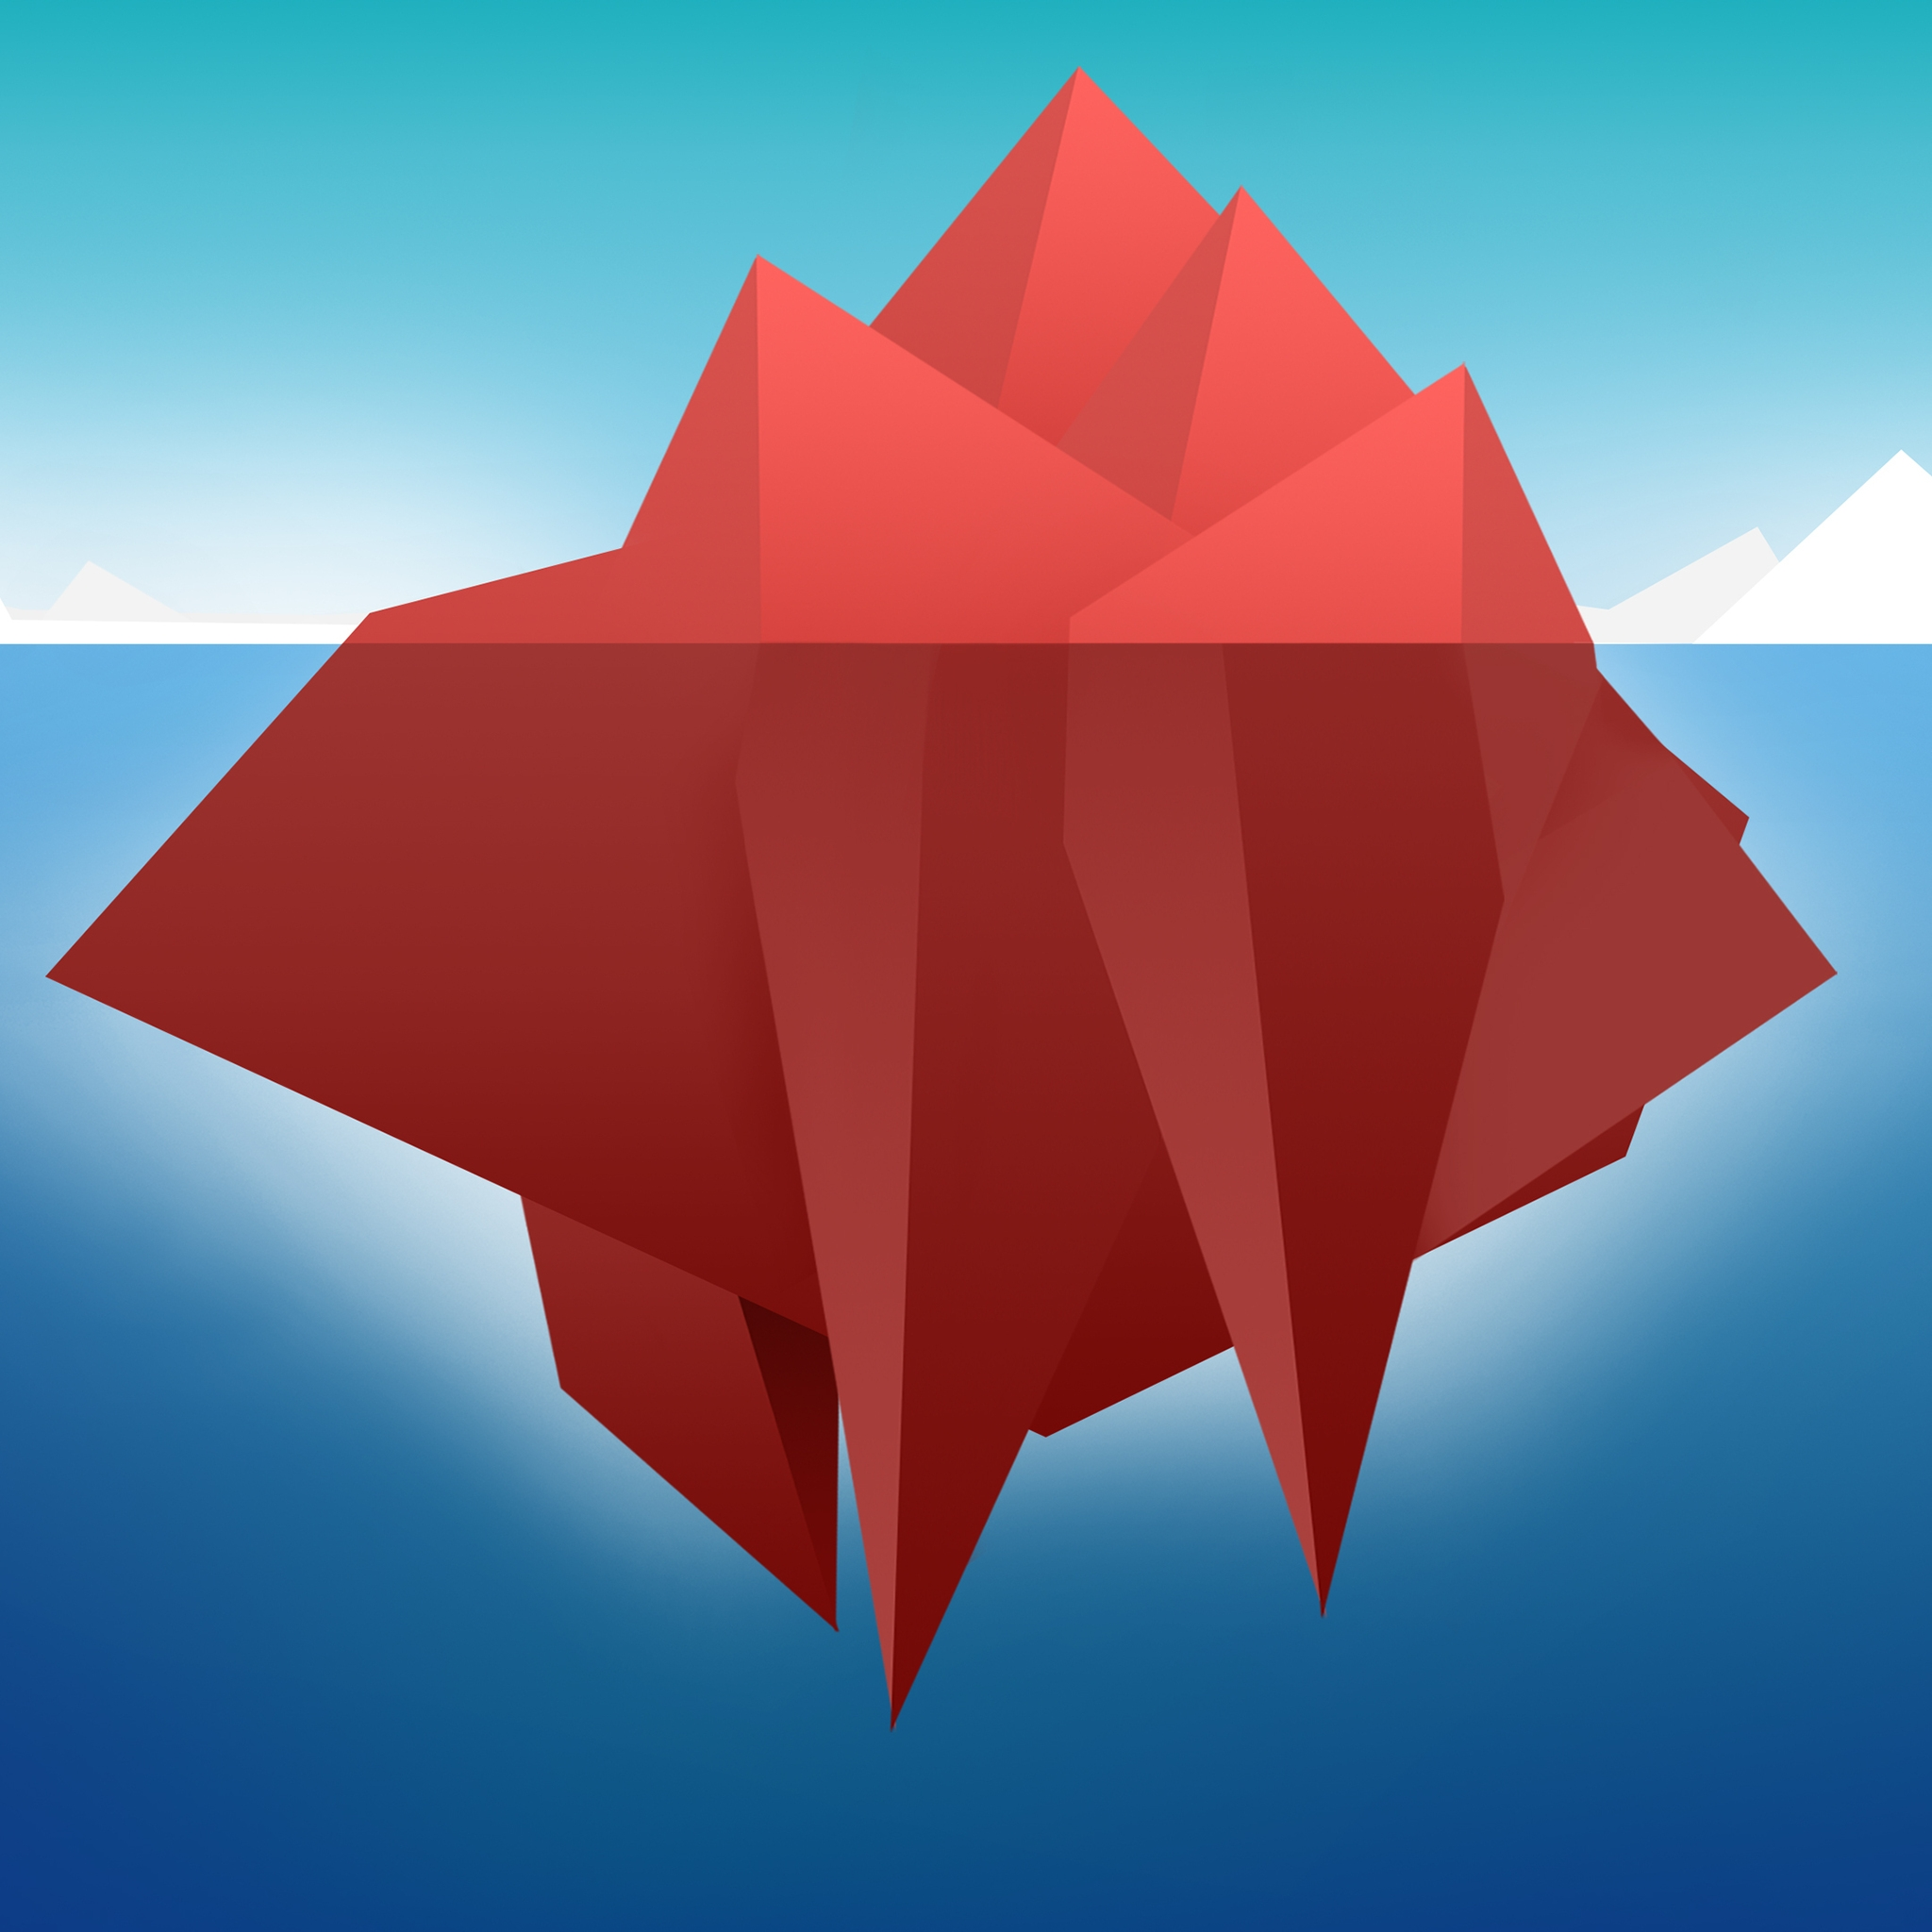 Red Minimal Iceberg for 2048 x 2048 New iPad resolution